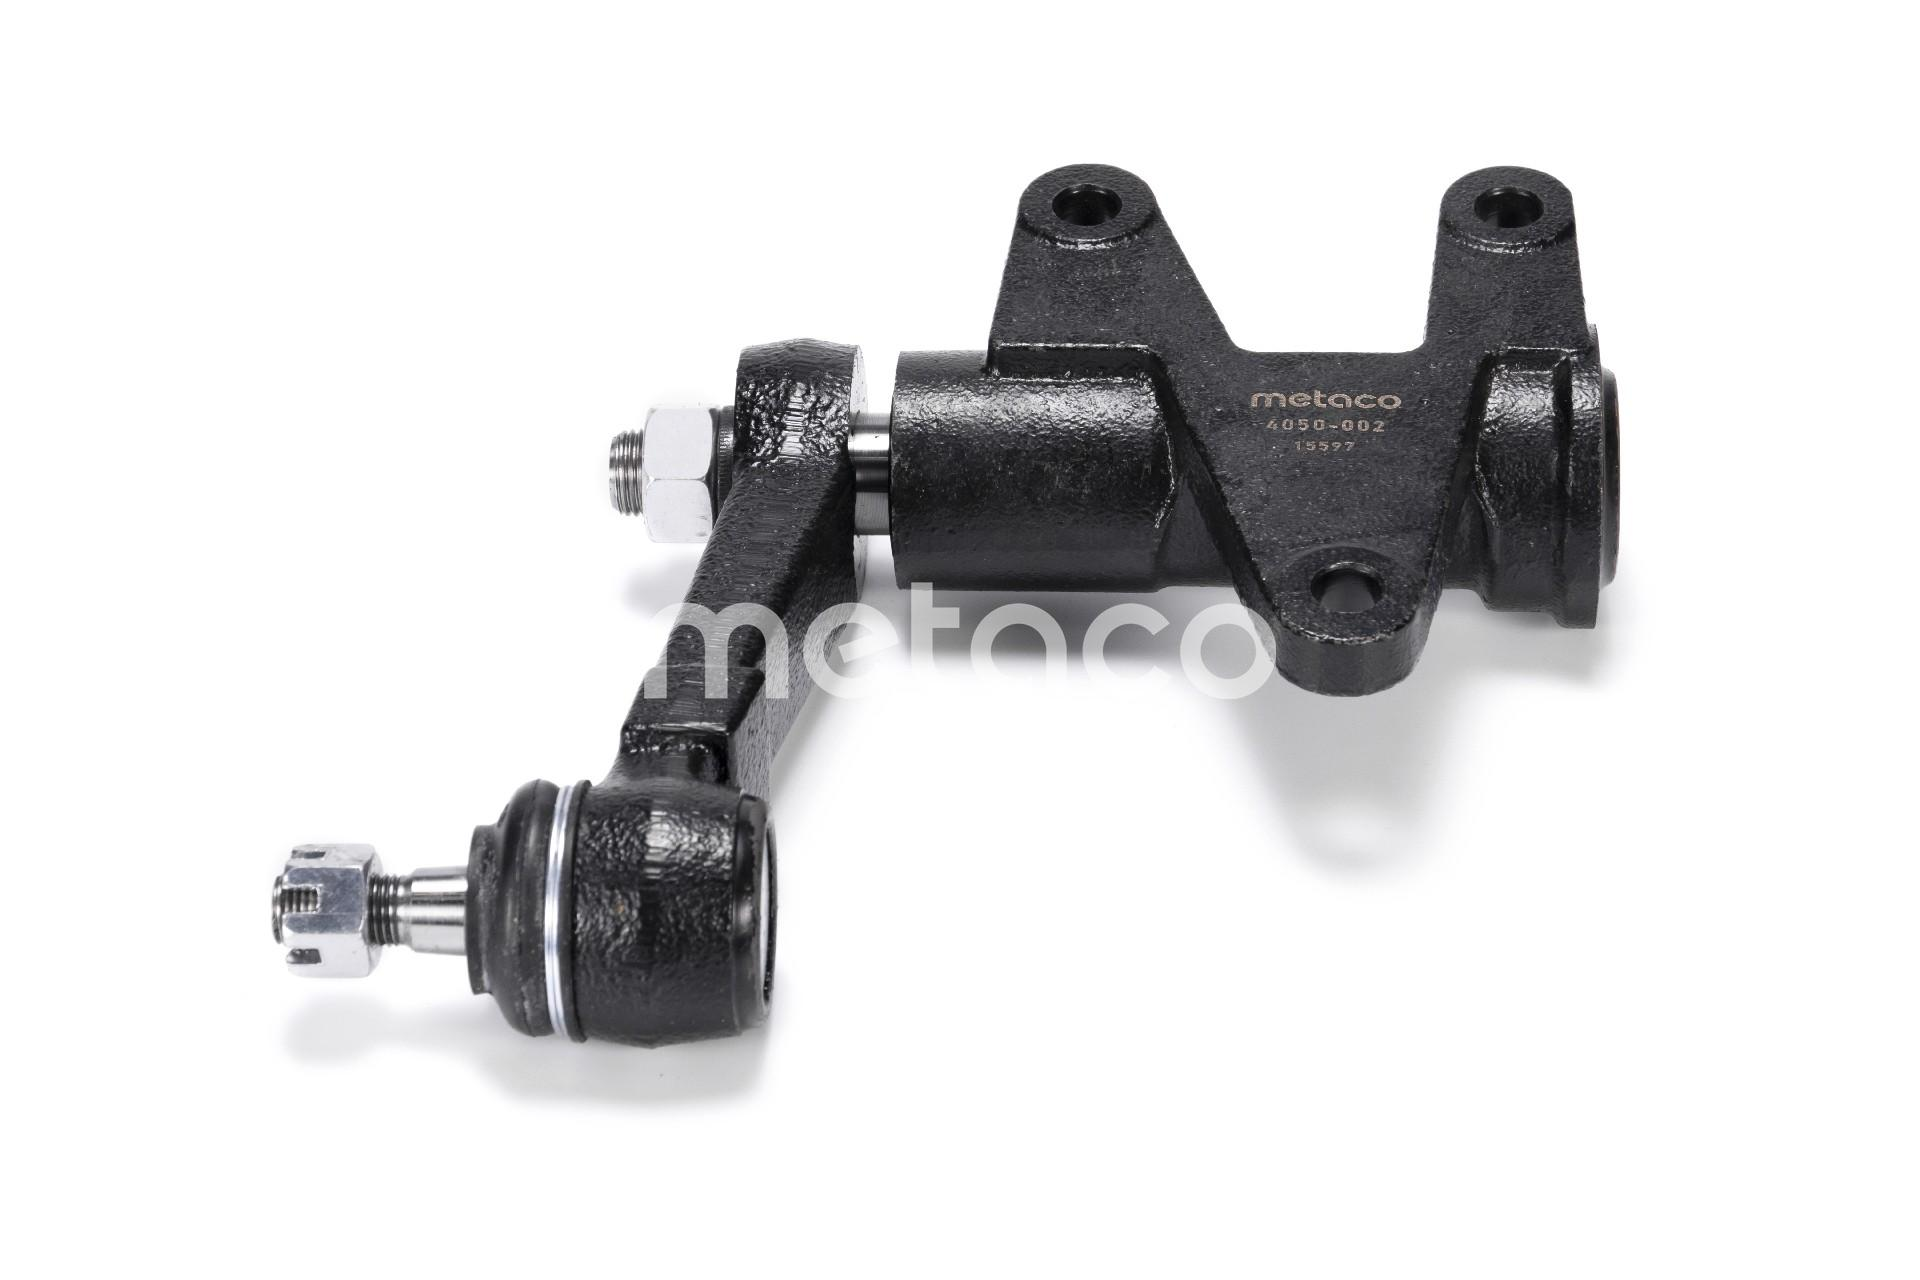 Metaco 4050-002 Mitsubishi MR344654, MR296272